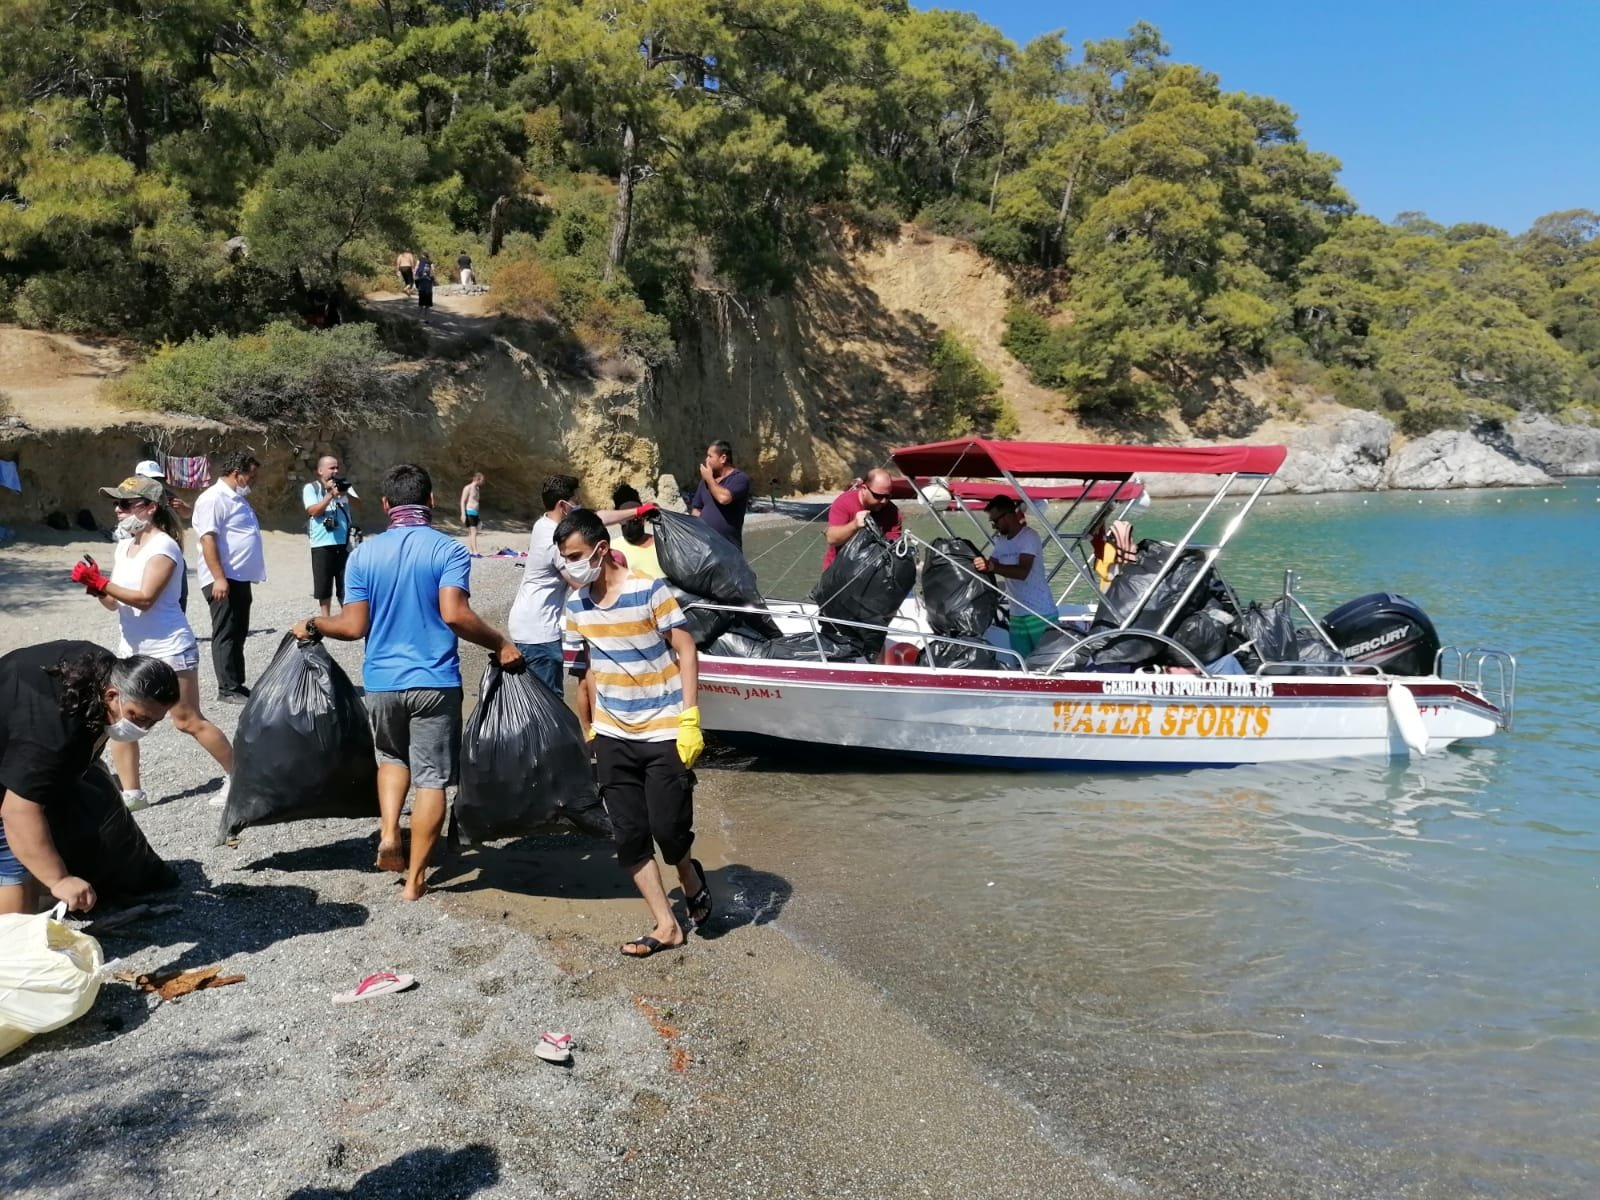 Volunteers load plastic bags of garbage onto a boat in Darboğaz Bay, in the Fethiye district of Muğla province, southwestern Turkey, Aug. 23, 2020. (AA Photo)